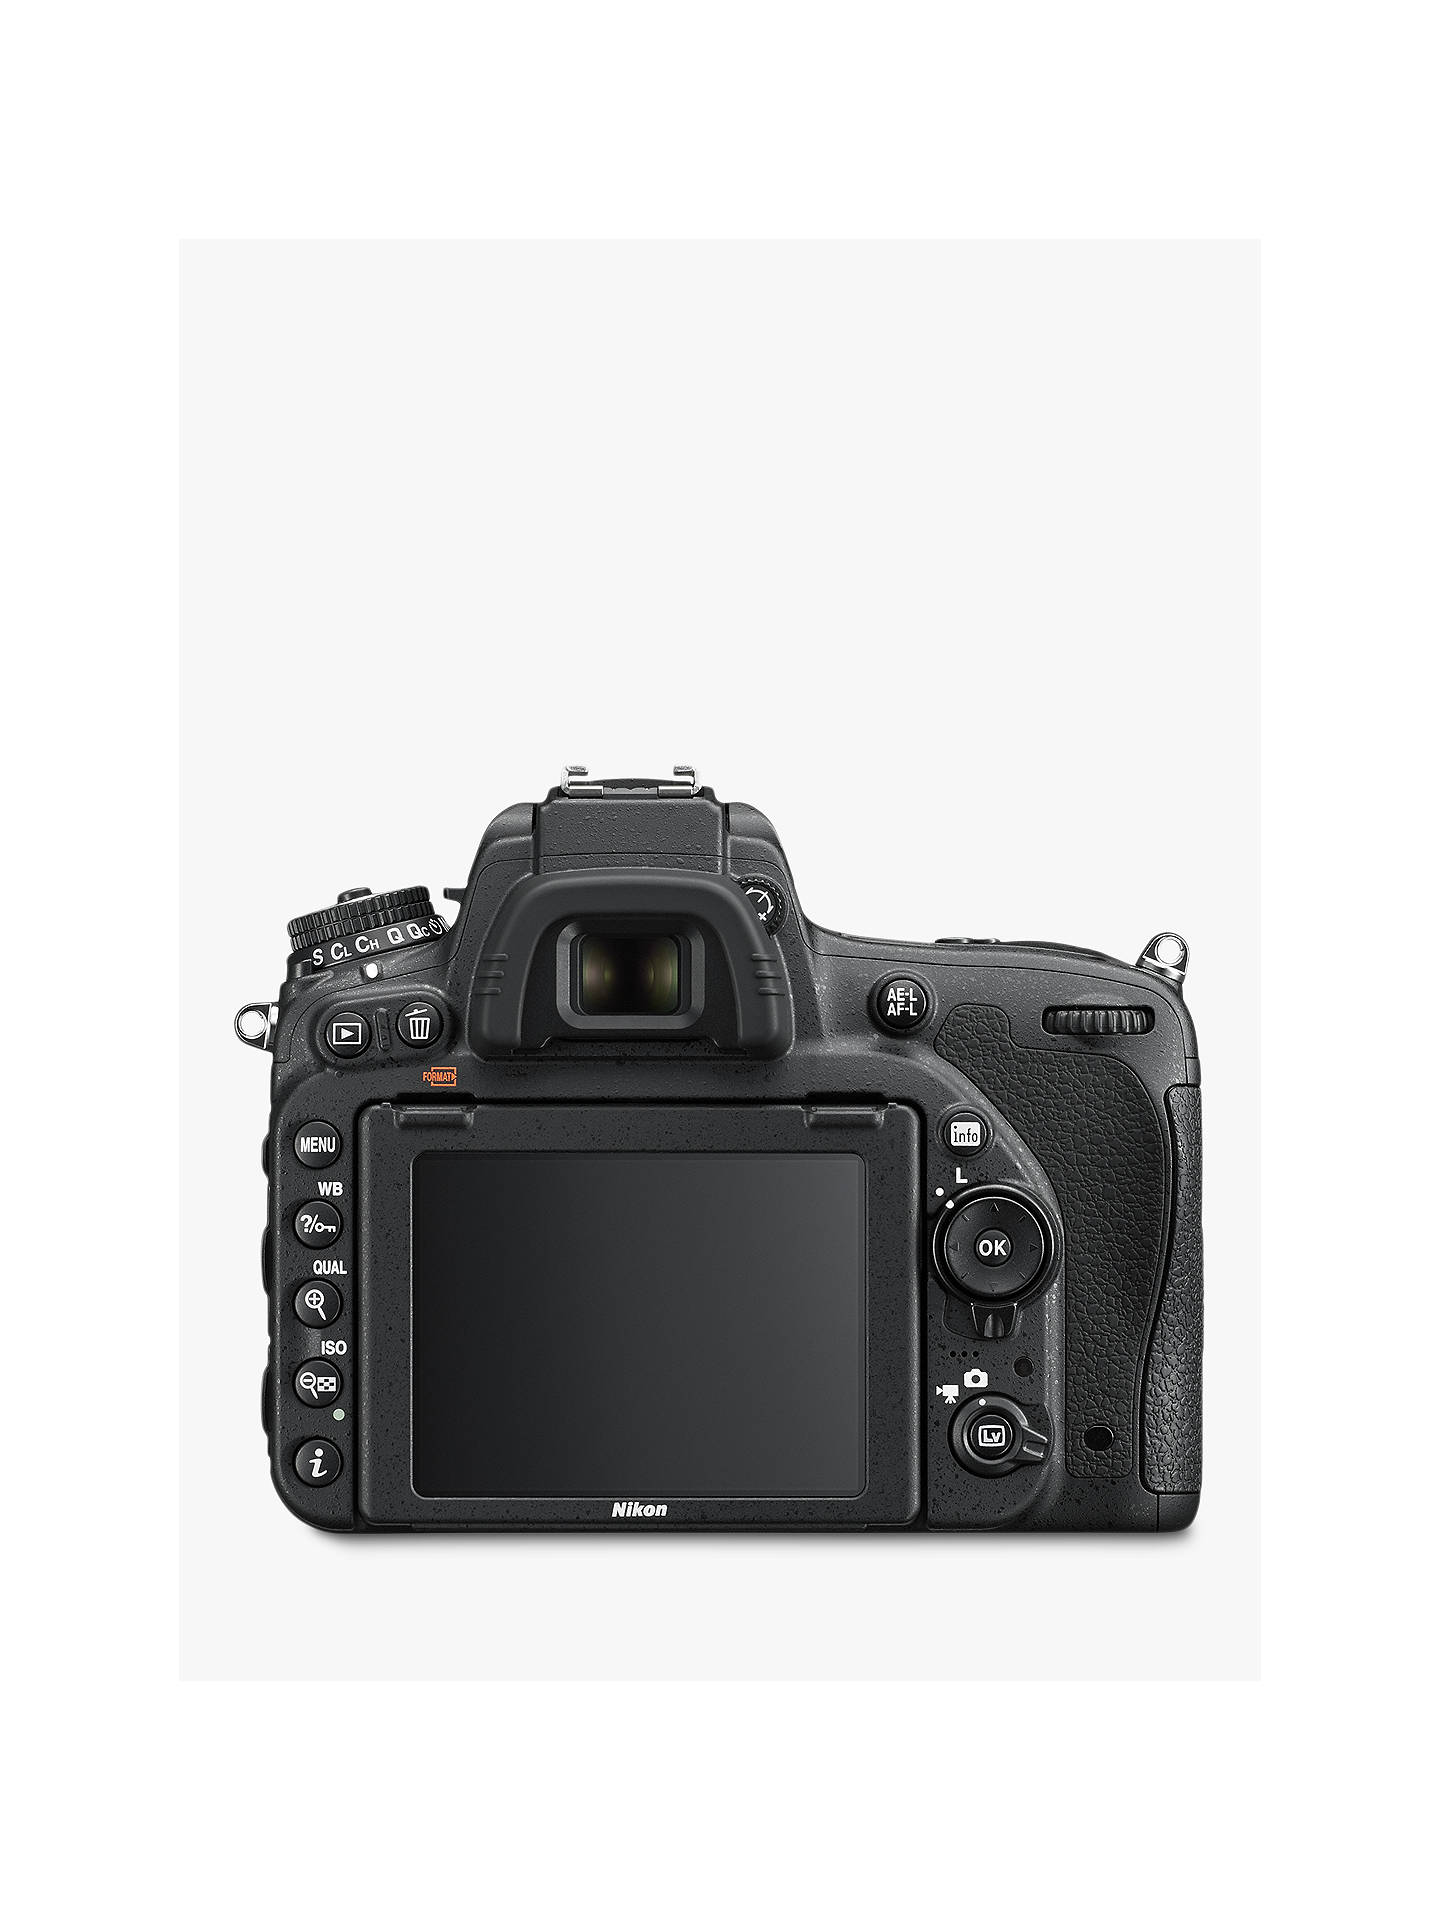 Nikon D750 Digital SLR Camera, HD 1080p, 24 3MP, Wi-Fi, 3 2